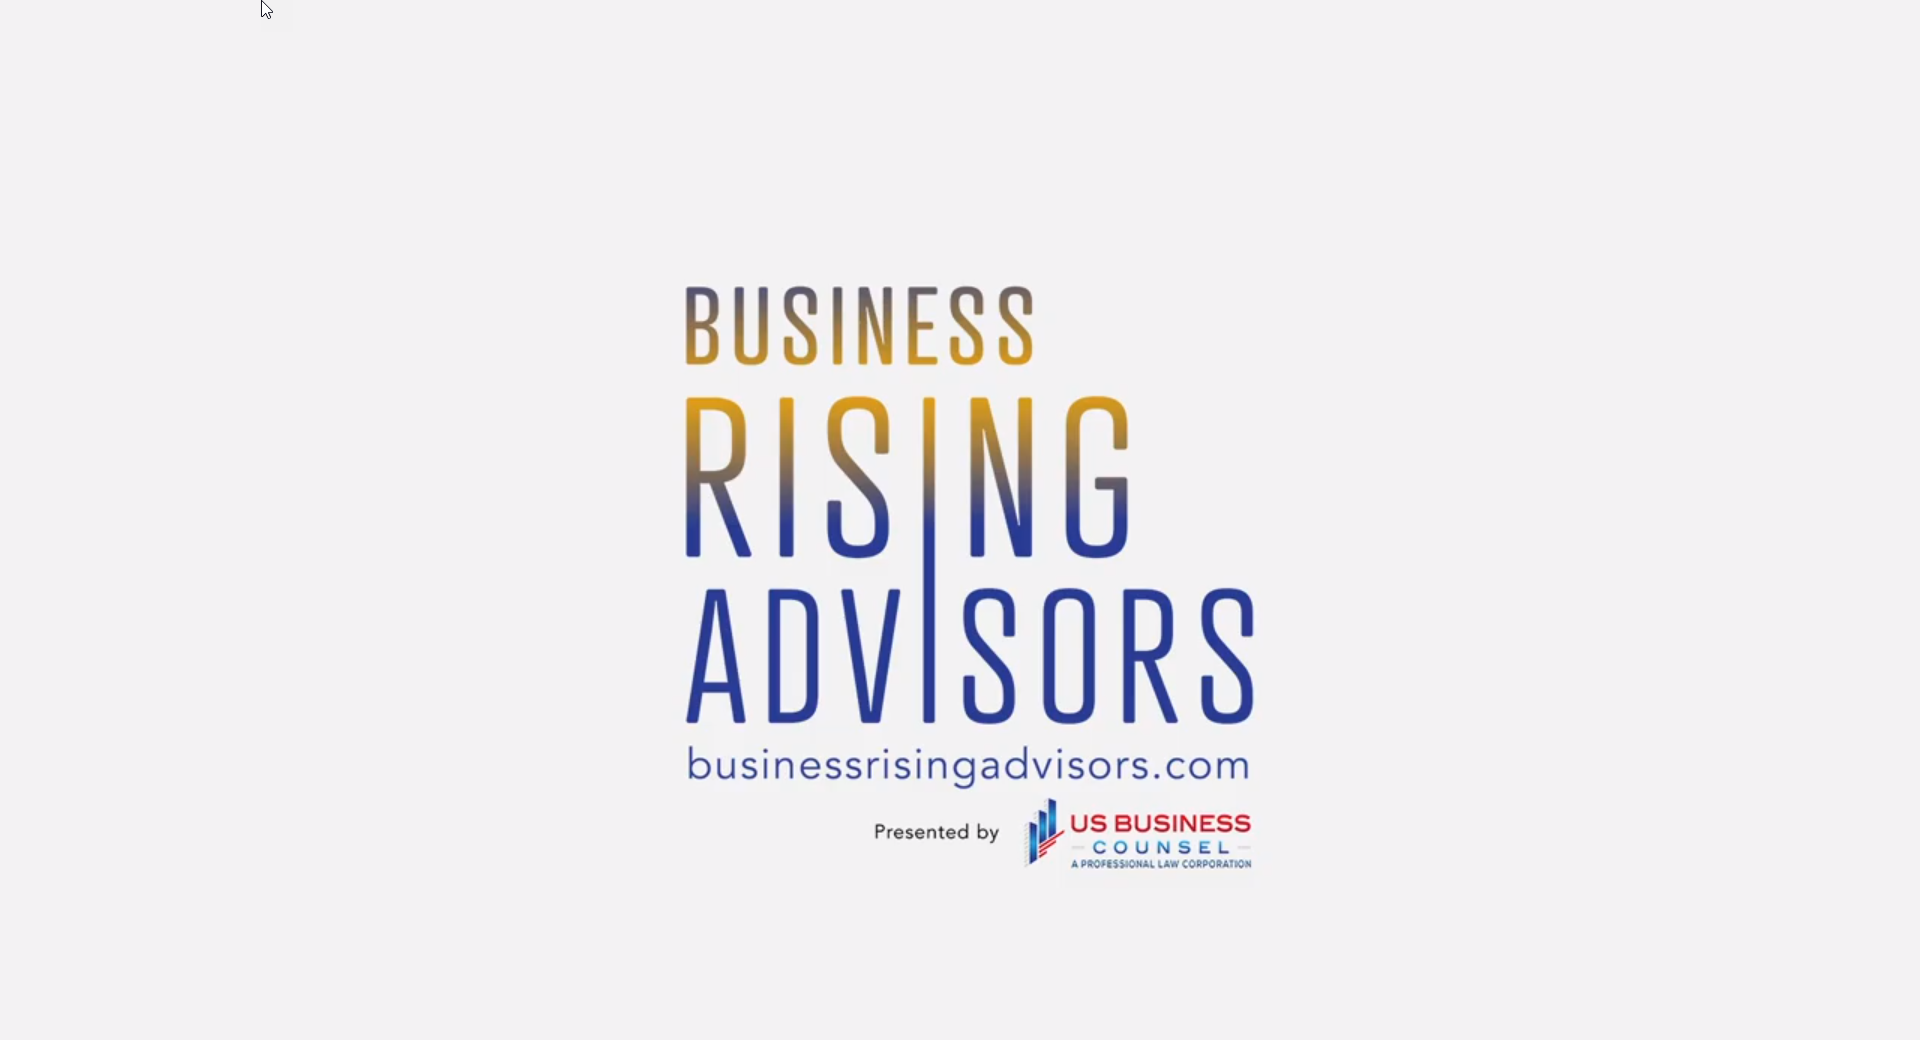 Opening slide from first recording of Business Rising Advisors video